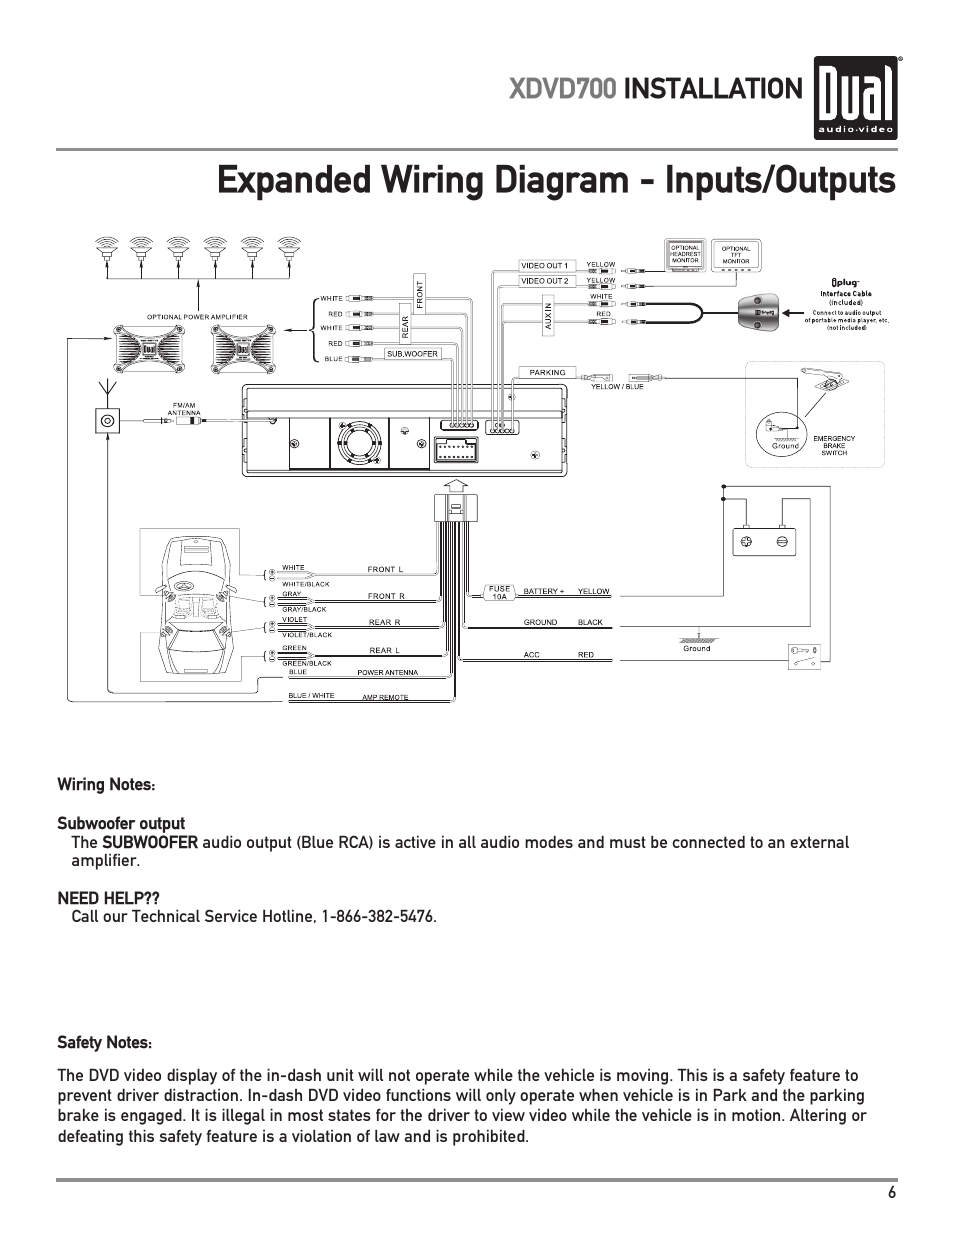 1998 Polaris Magnum Wiring Diagram Great Design Of 2003 Sportsman 500 Arctic Cat Zl 425